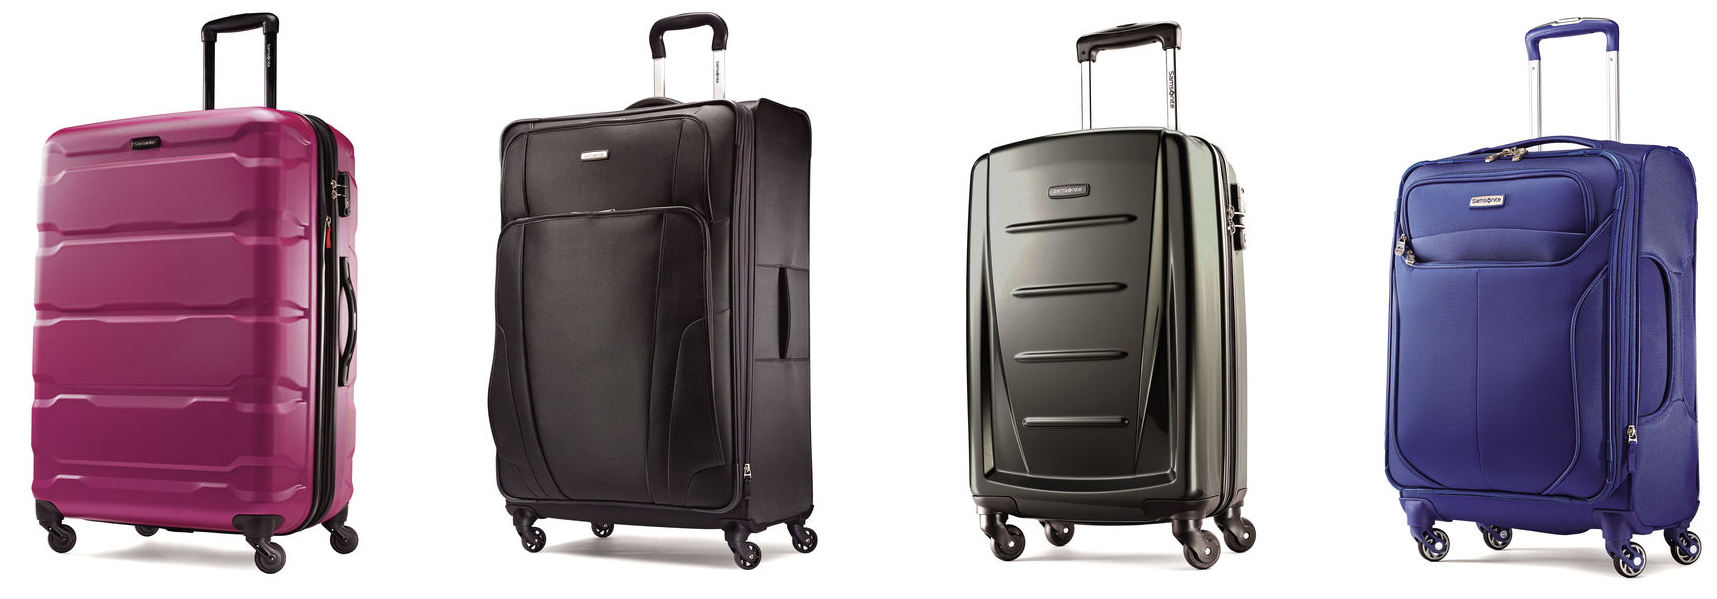 Samsonite Luggage Sale! | Hot Deals – DealsMaven.com